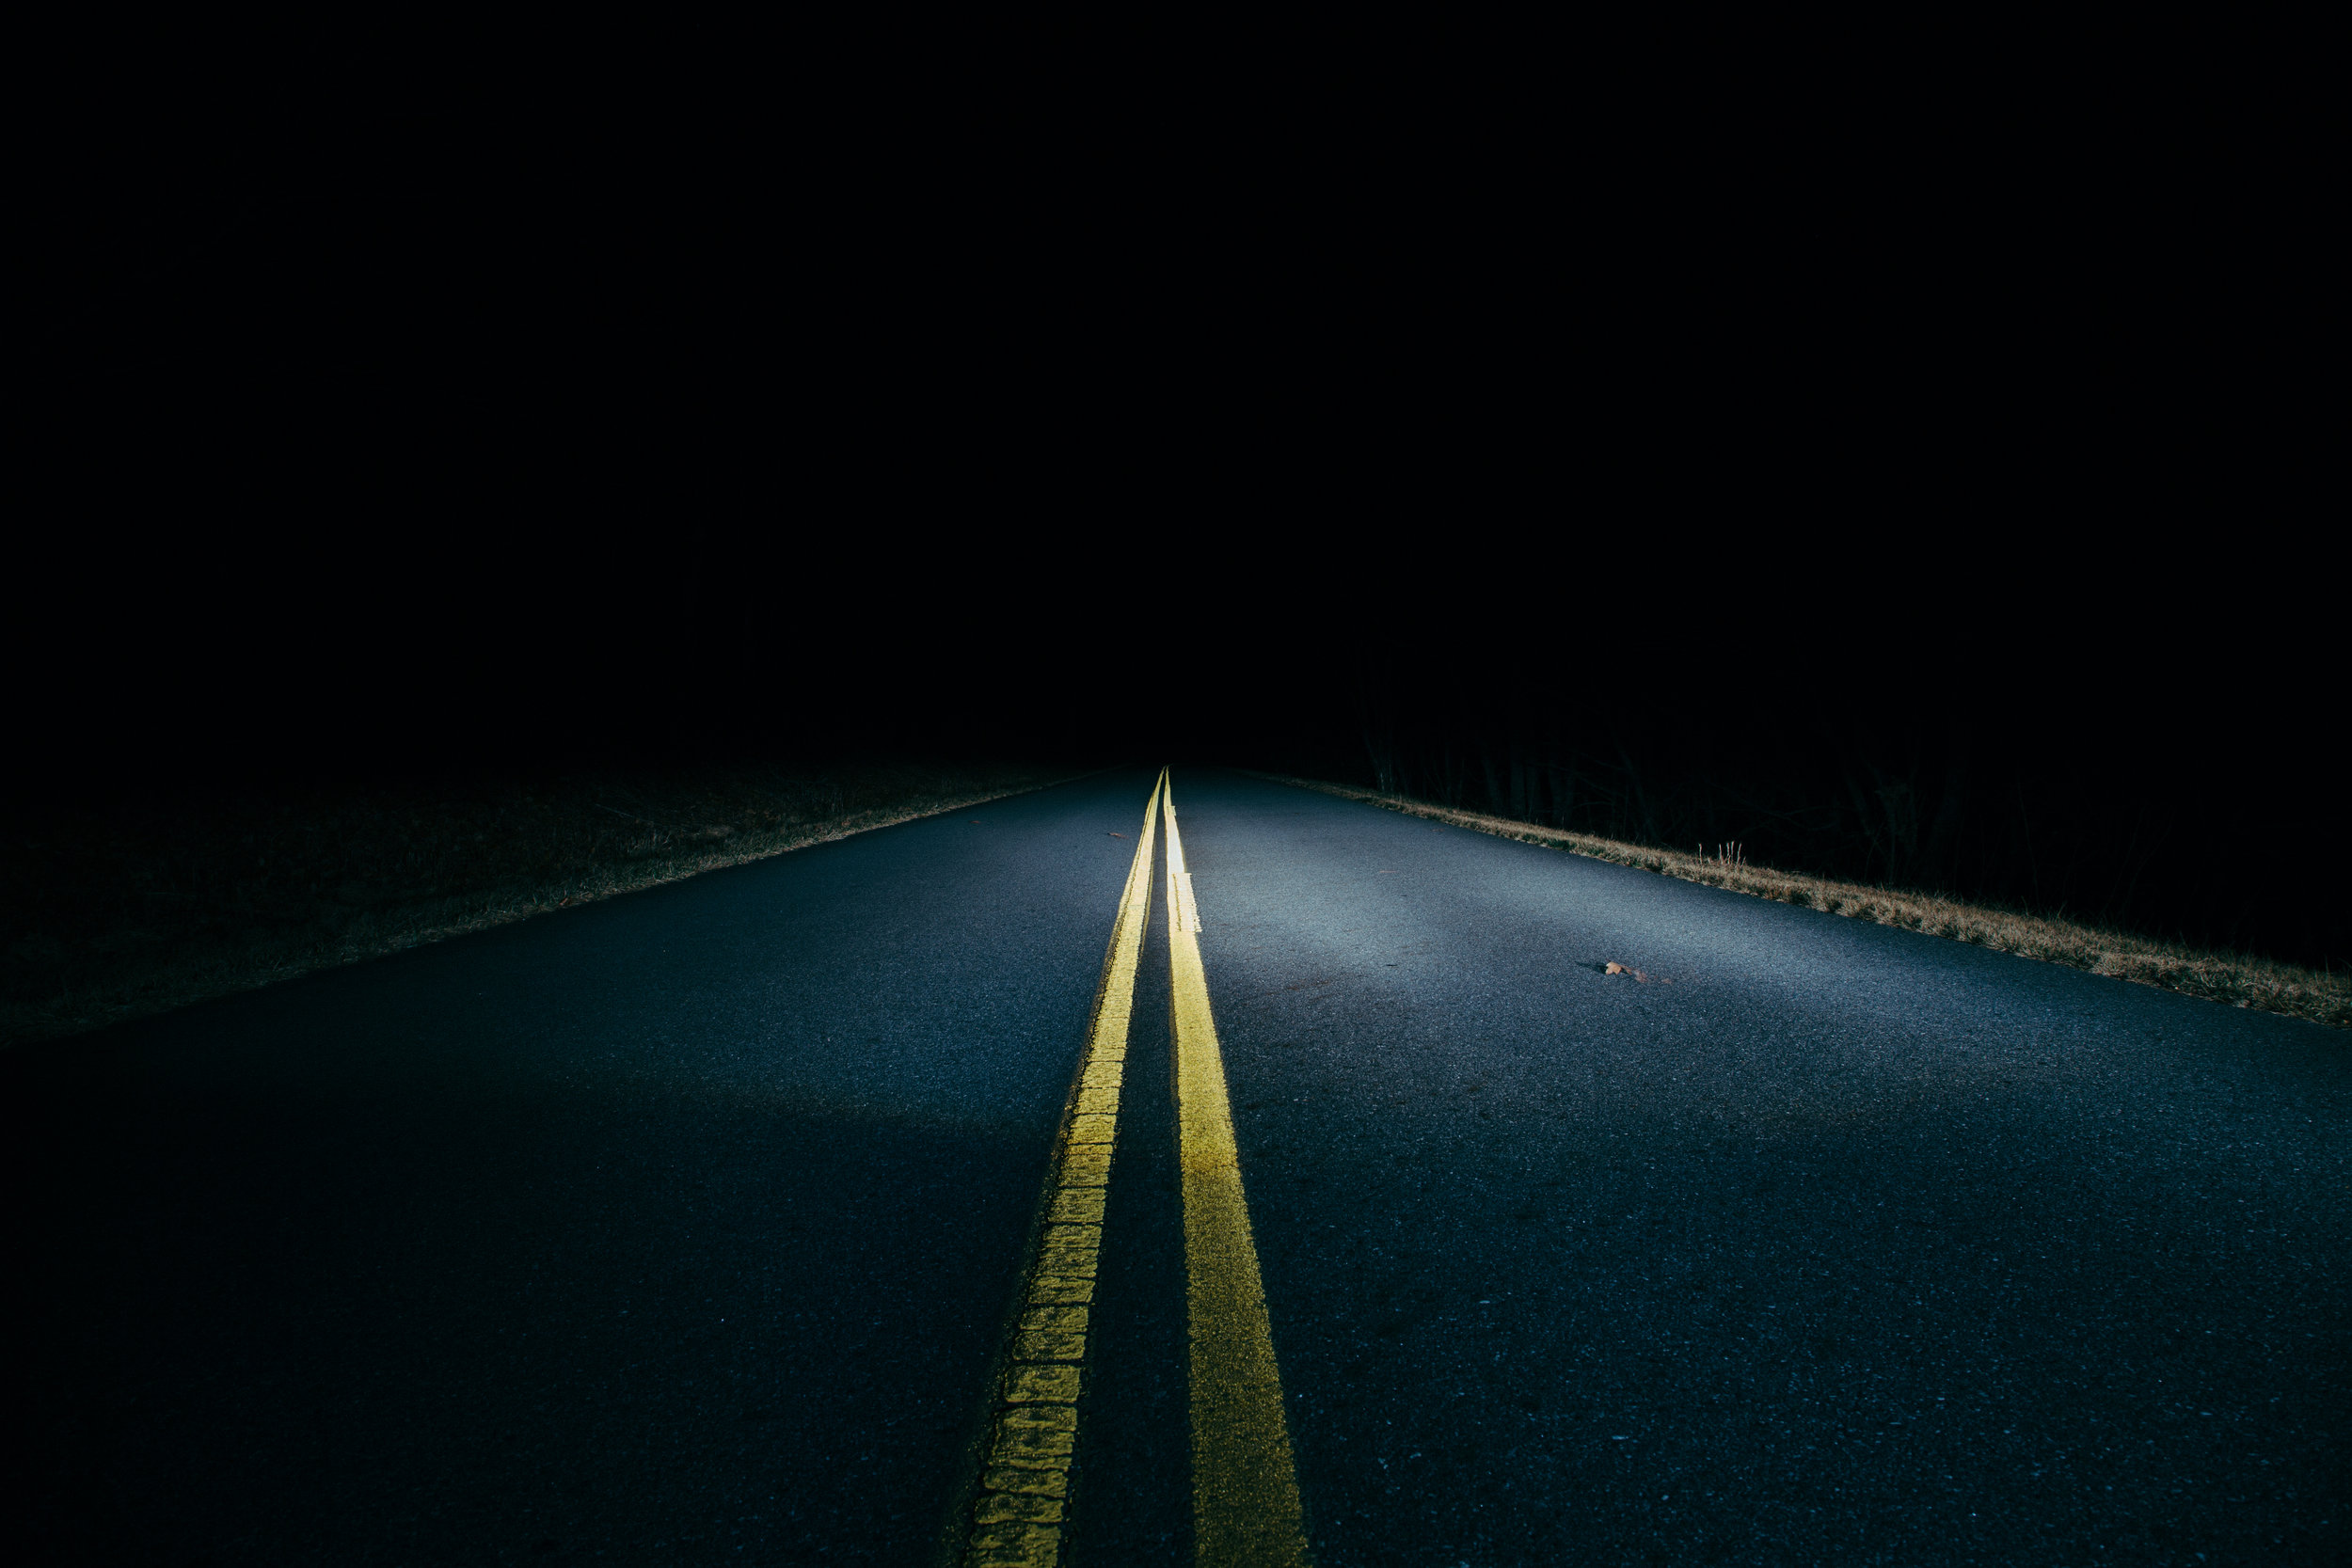 dark-road-long-expsure